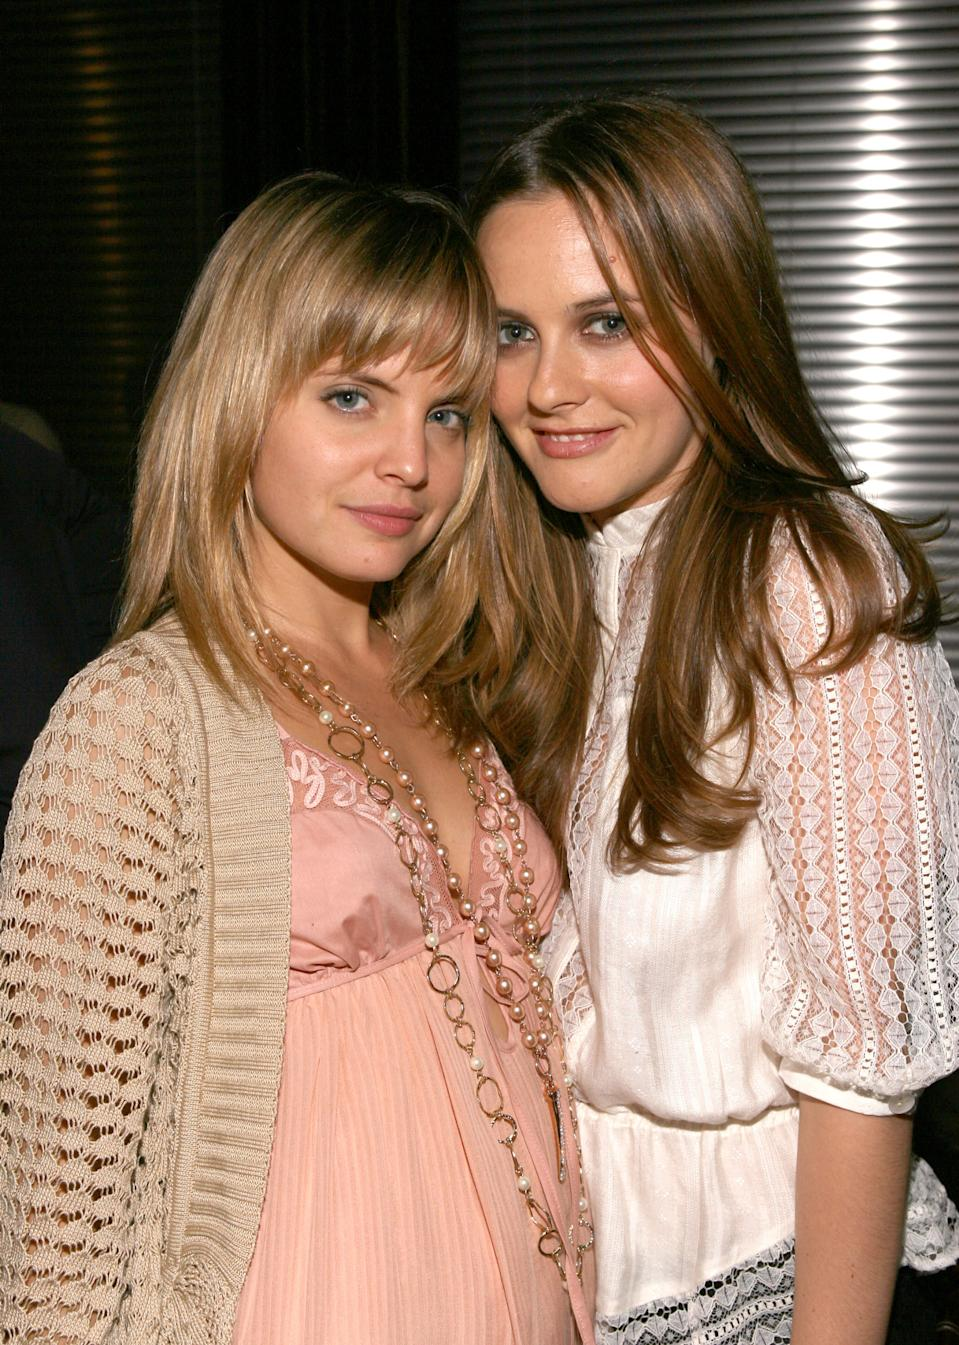 Mena Suvari and Alicia Silverstone during Kevin Spacey Announces the Launch of the New Triggerstreet.com and Their Latest Venture with Budweiser Select - Inside at Social Hollywood in Los Angeles, California, United States. (Photo by Jesse Grant/WireImage)